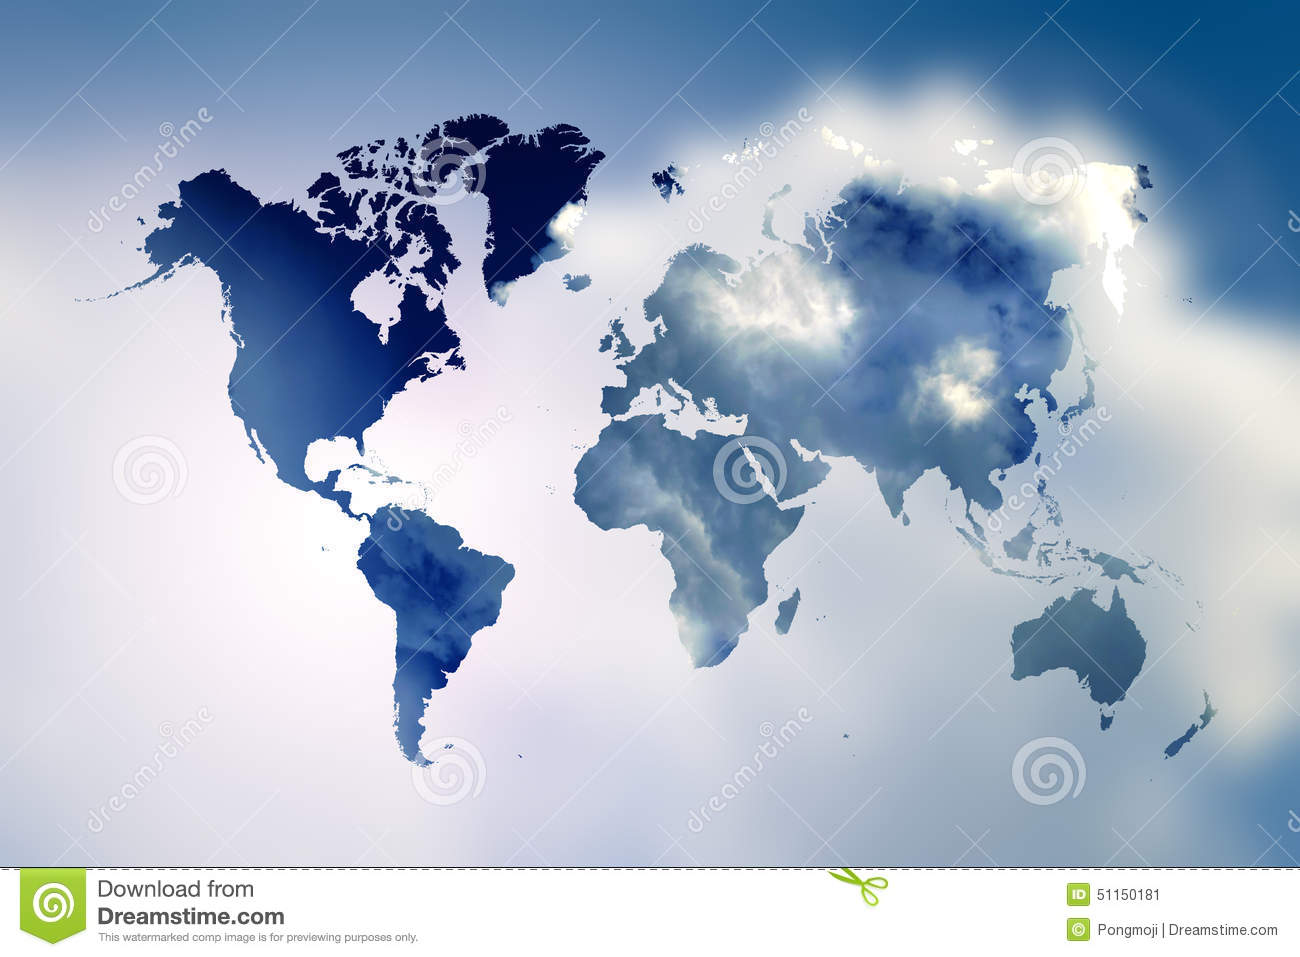 Blurred flare blue sky with world map stock illustration blurred flare blue sky with world map gumiabroncs Images